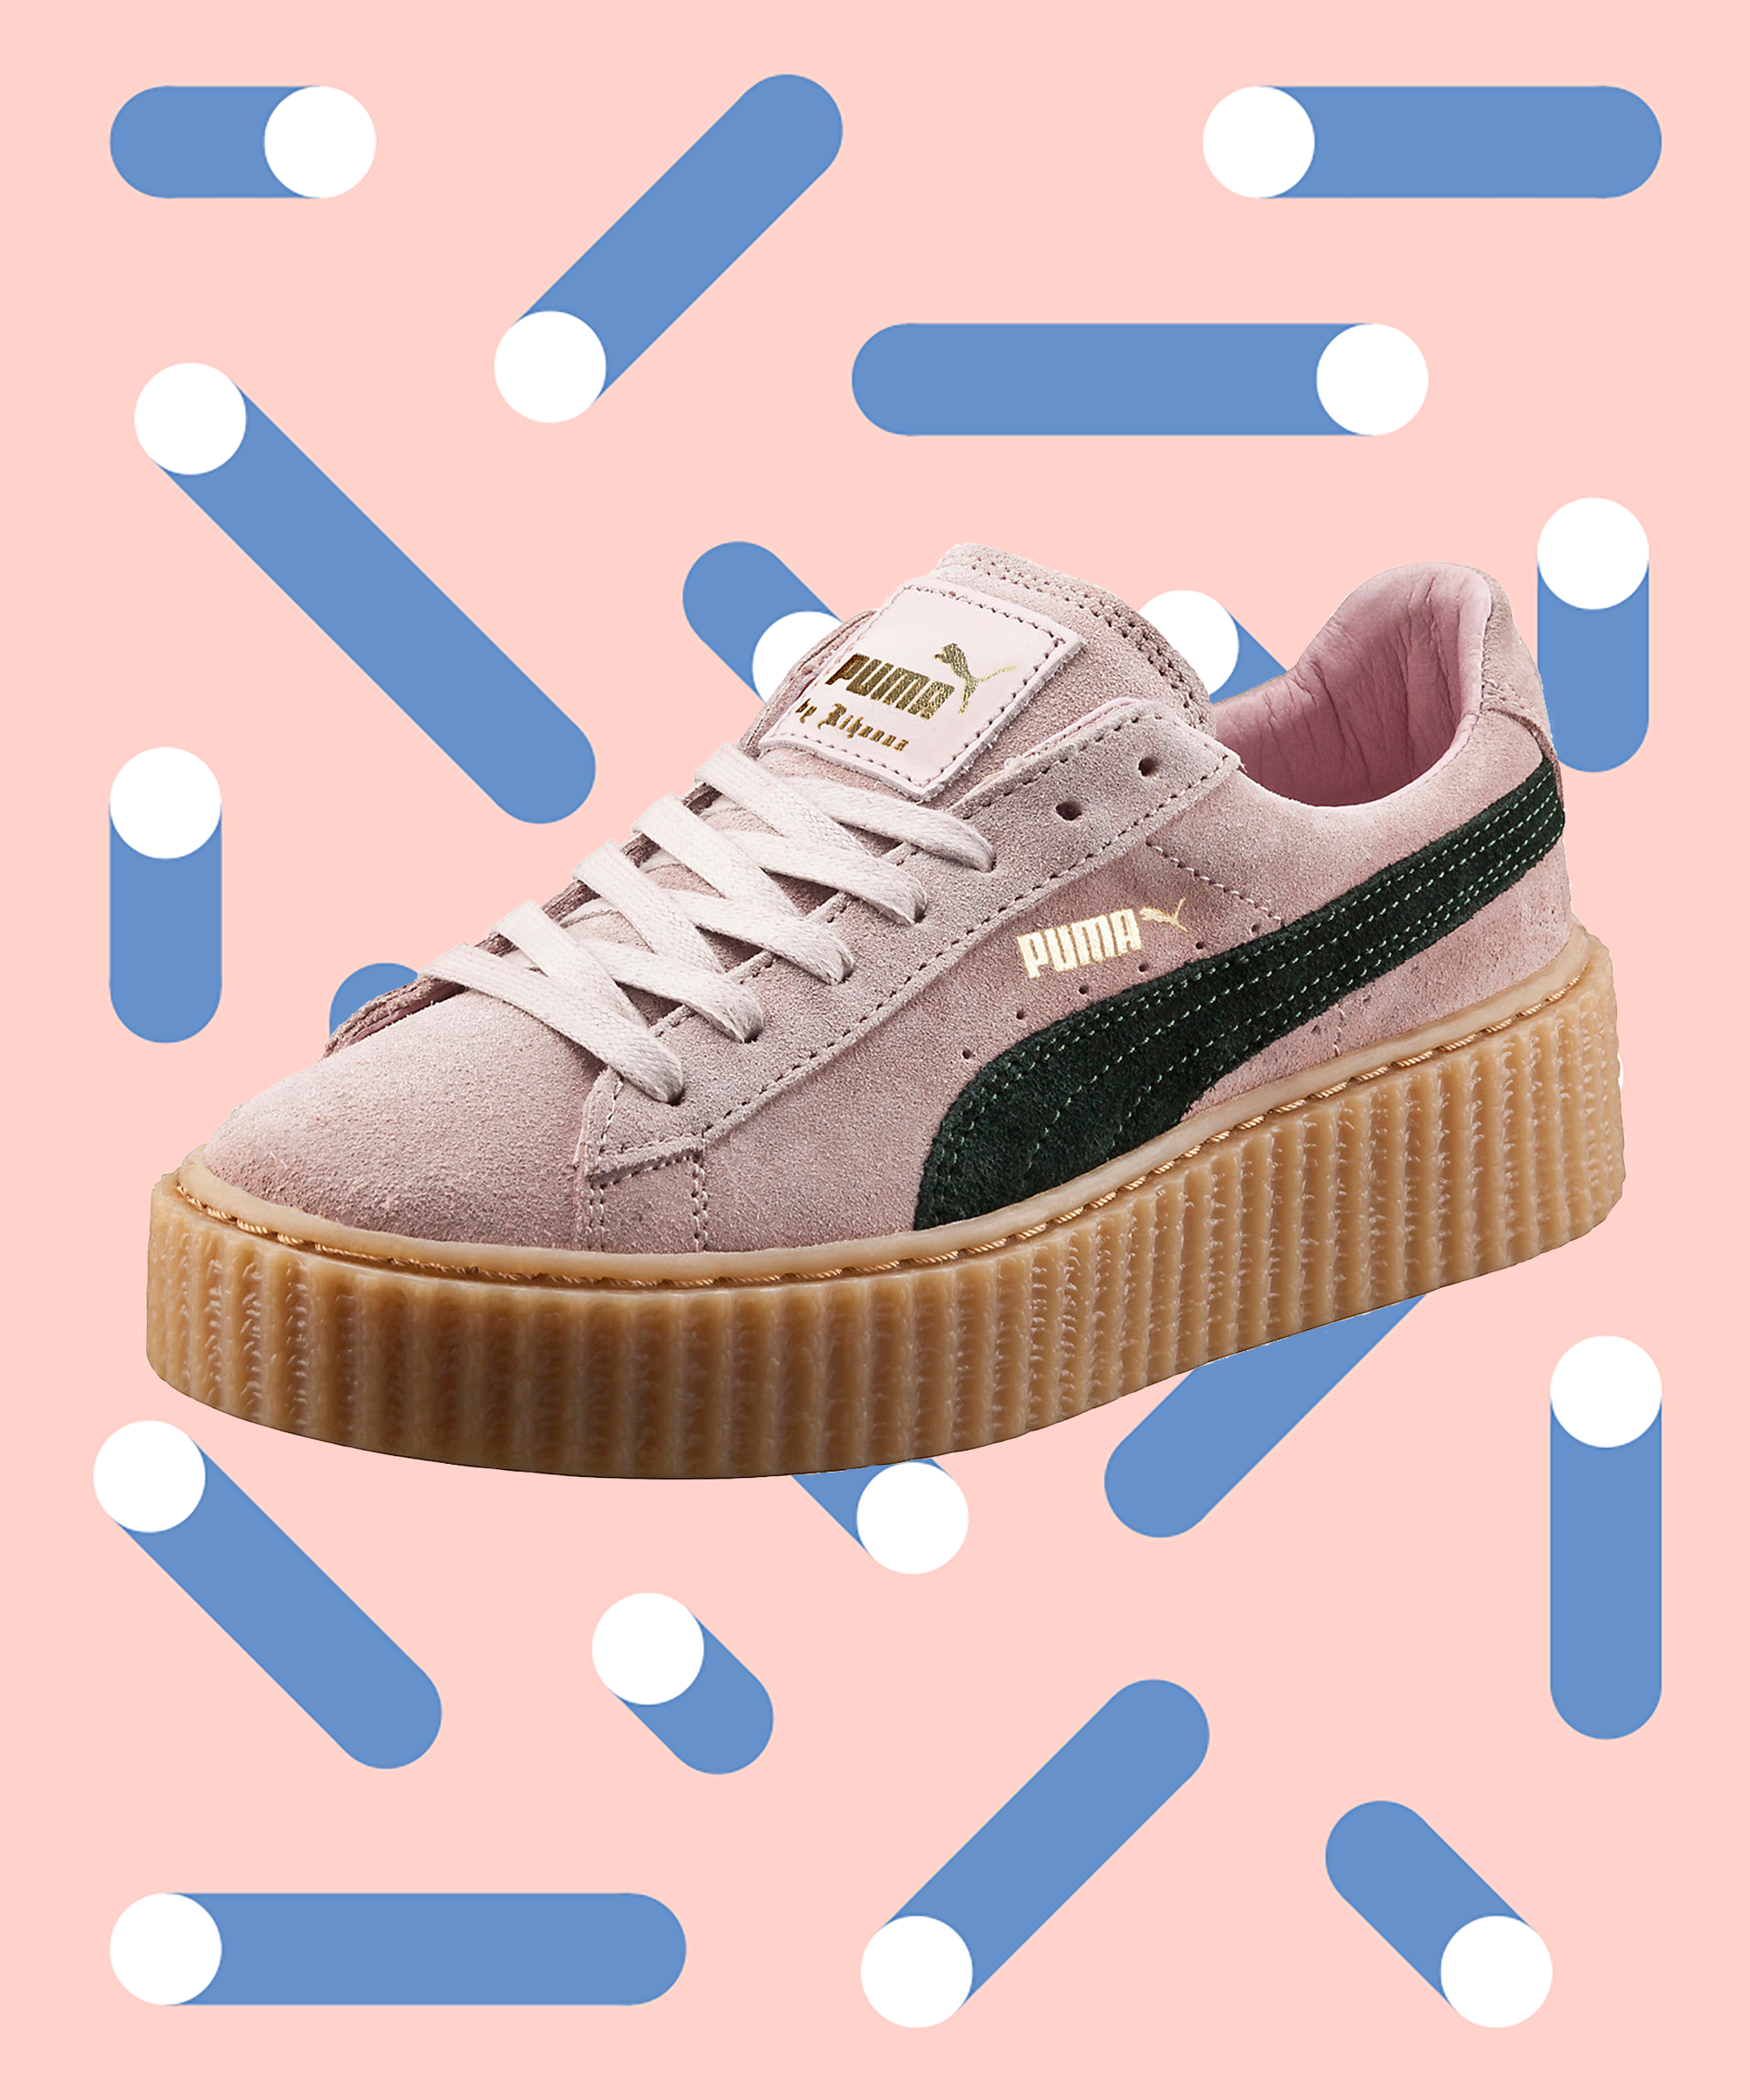 3424a4e328 How To Get Your Hands On Rihanna s Sold-Out Creepers